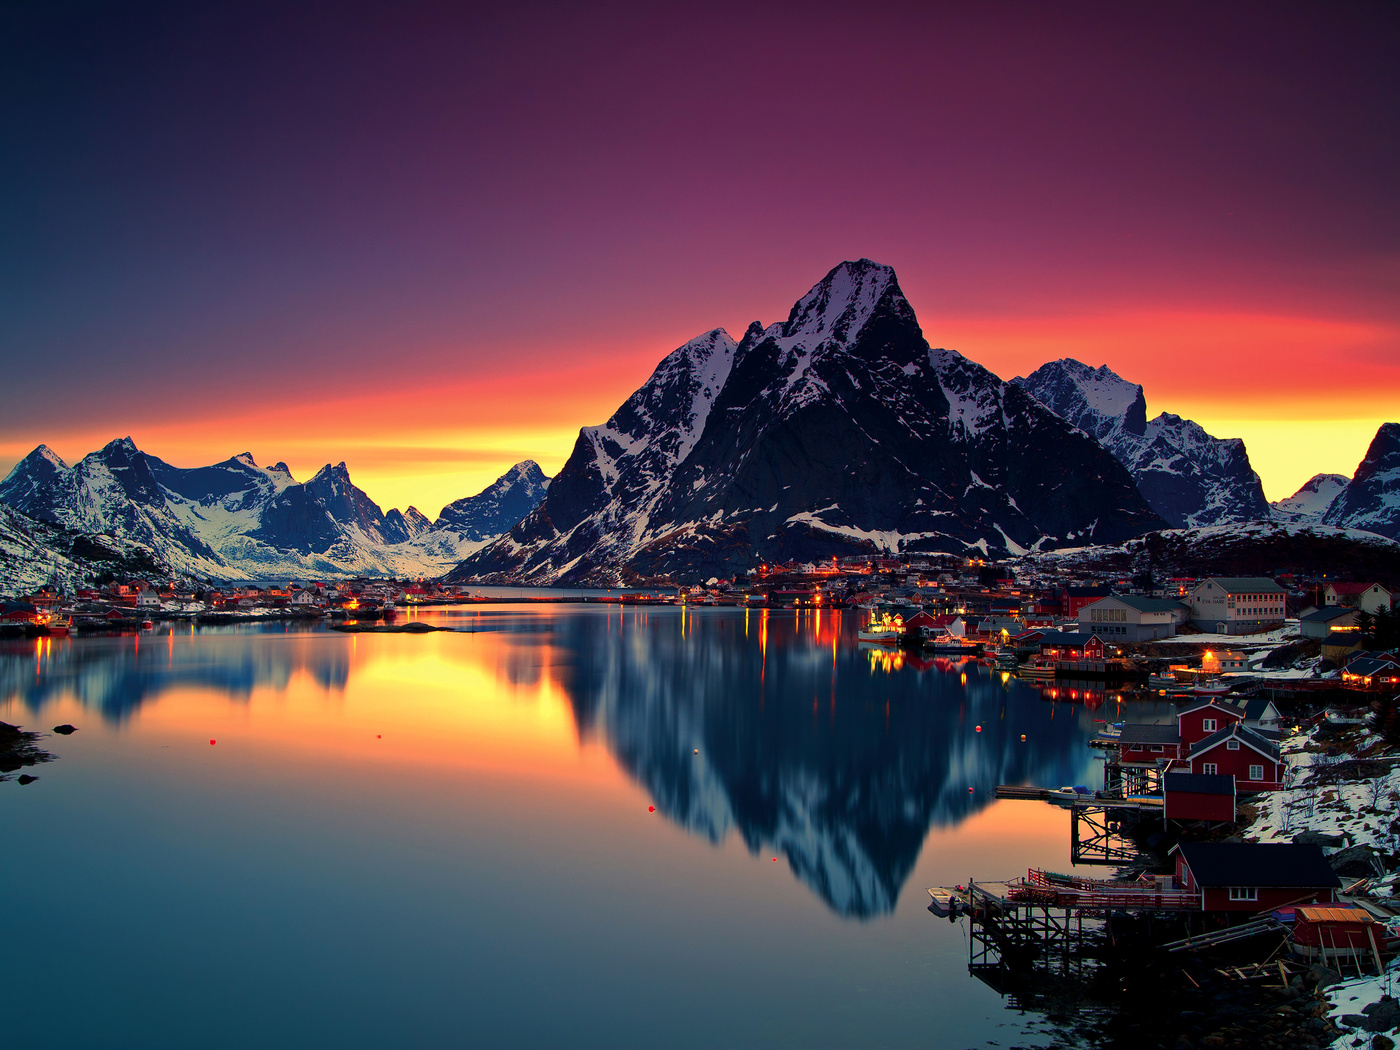 reinebringen-mountains-in-norway-b5.jpg